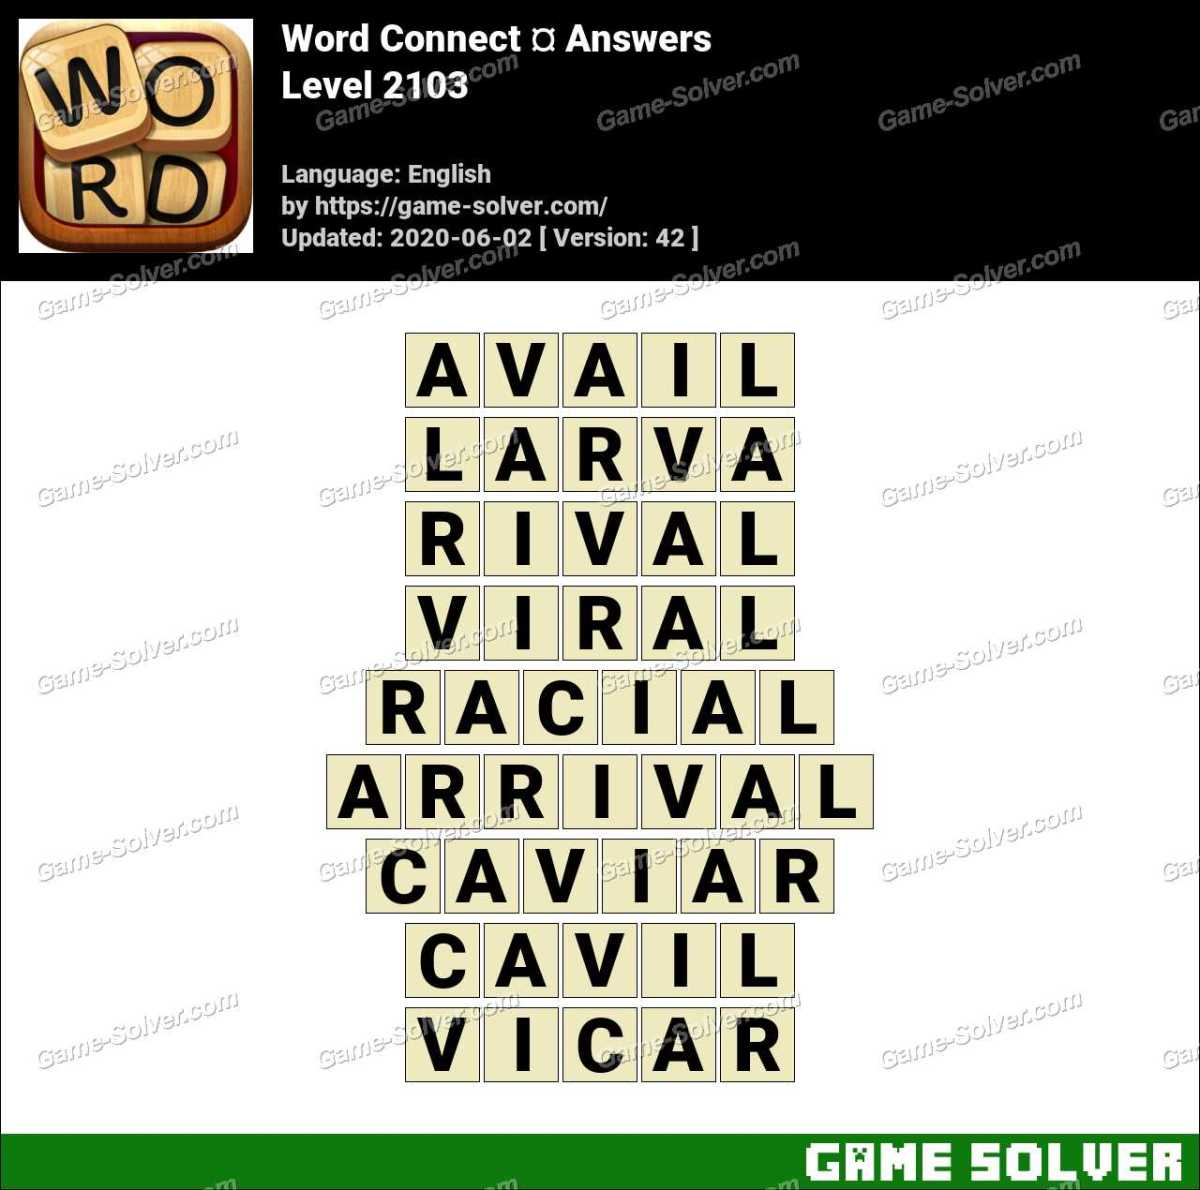 Word Connect Level 2103 Answers